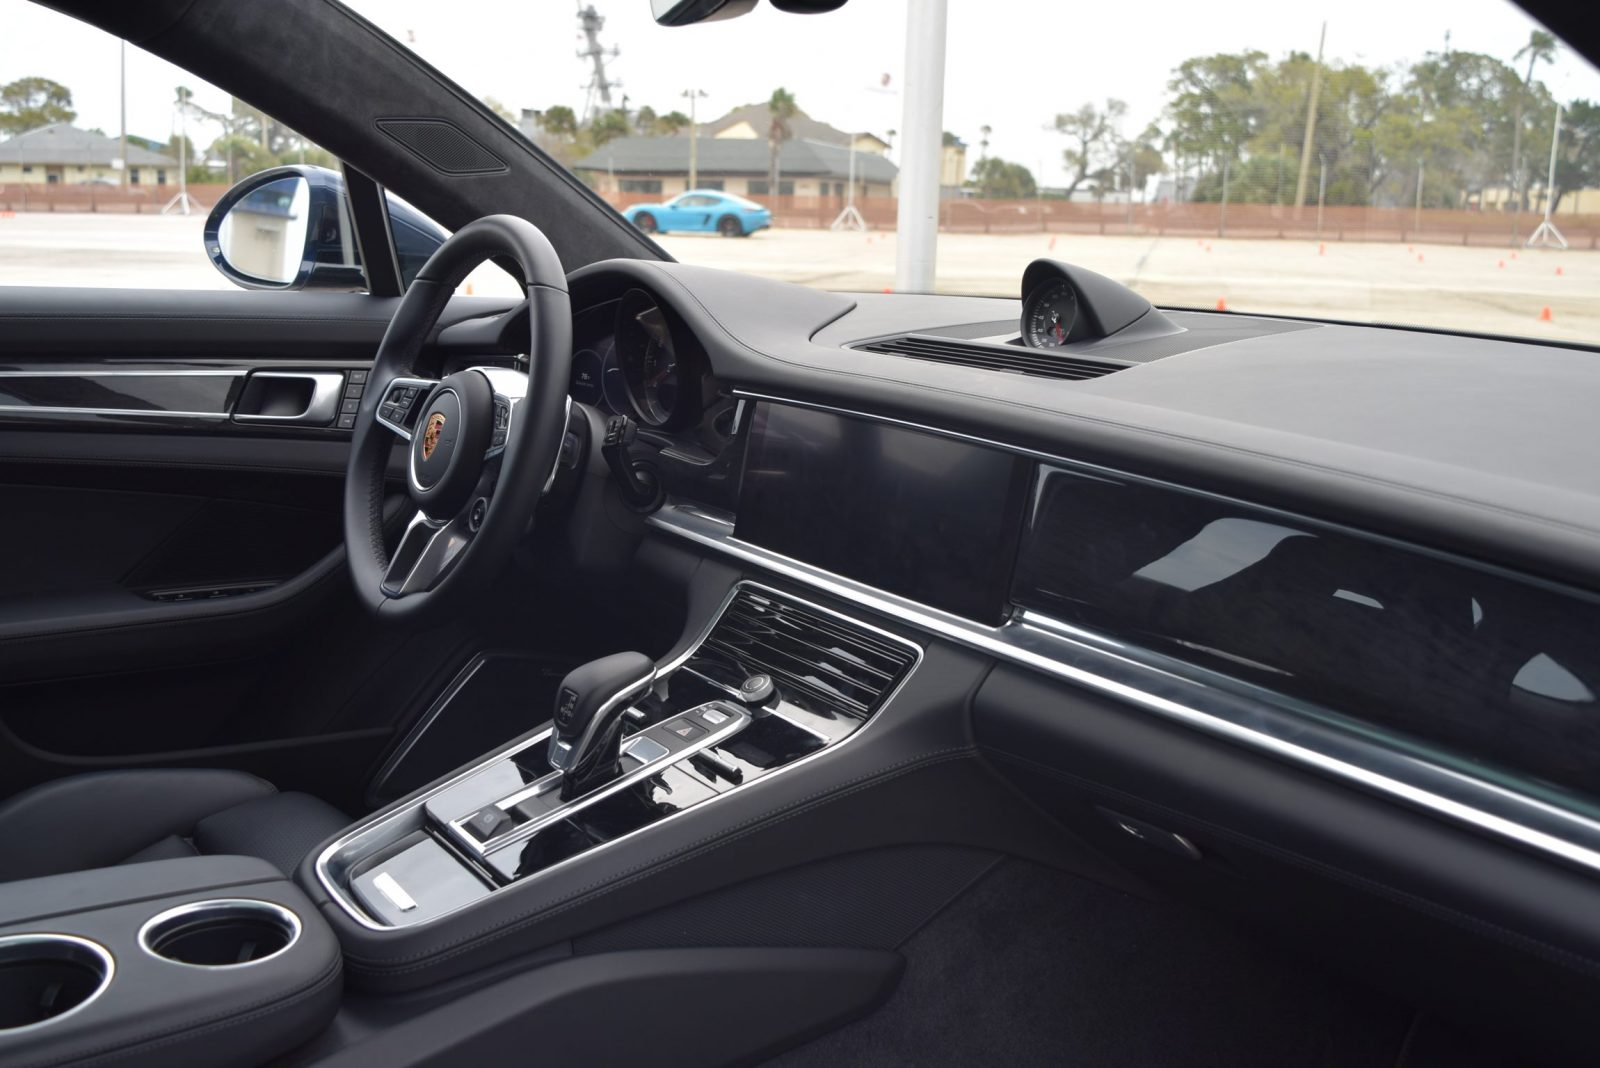 2017 Porsche Panamera TURBO Interior 2